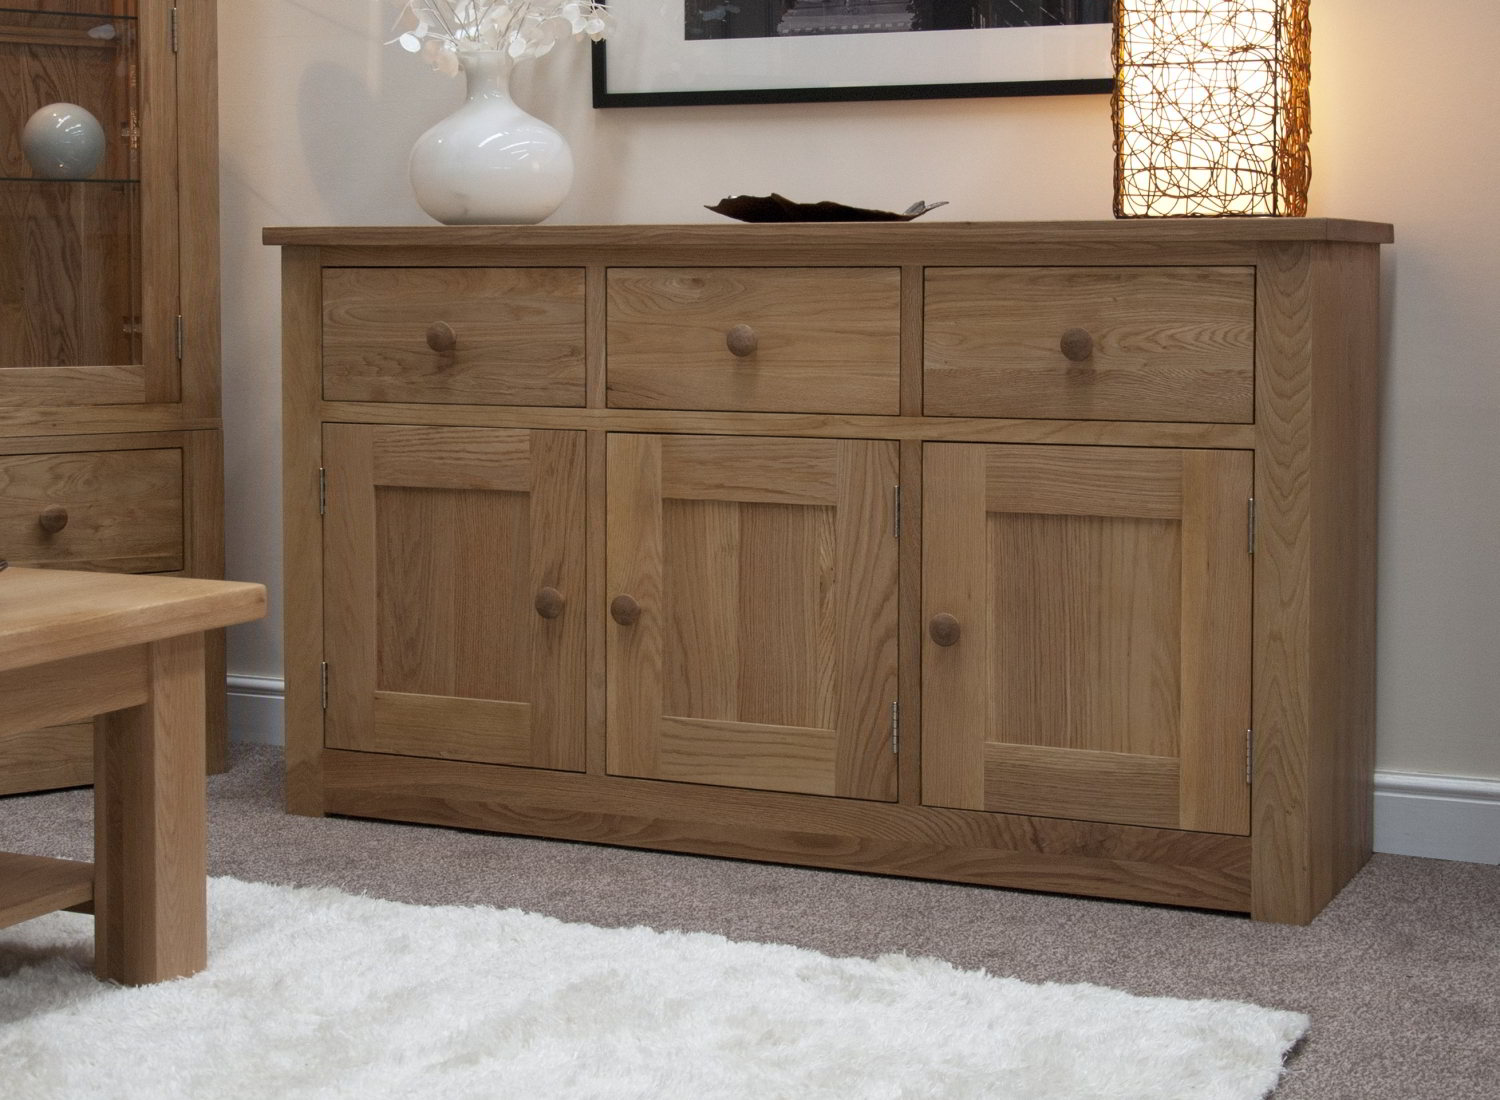 Kingston Solid Oak Living Dining Room Furniture Large Storage Sideboard